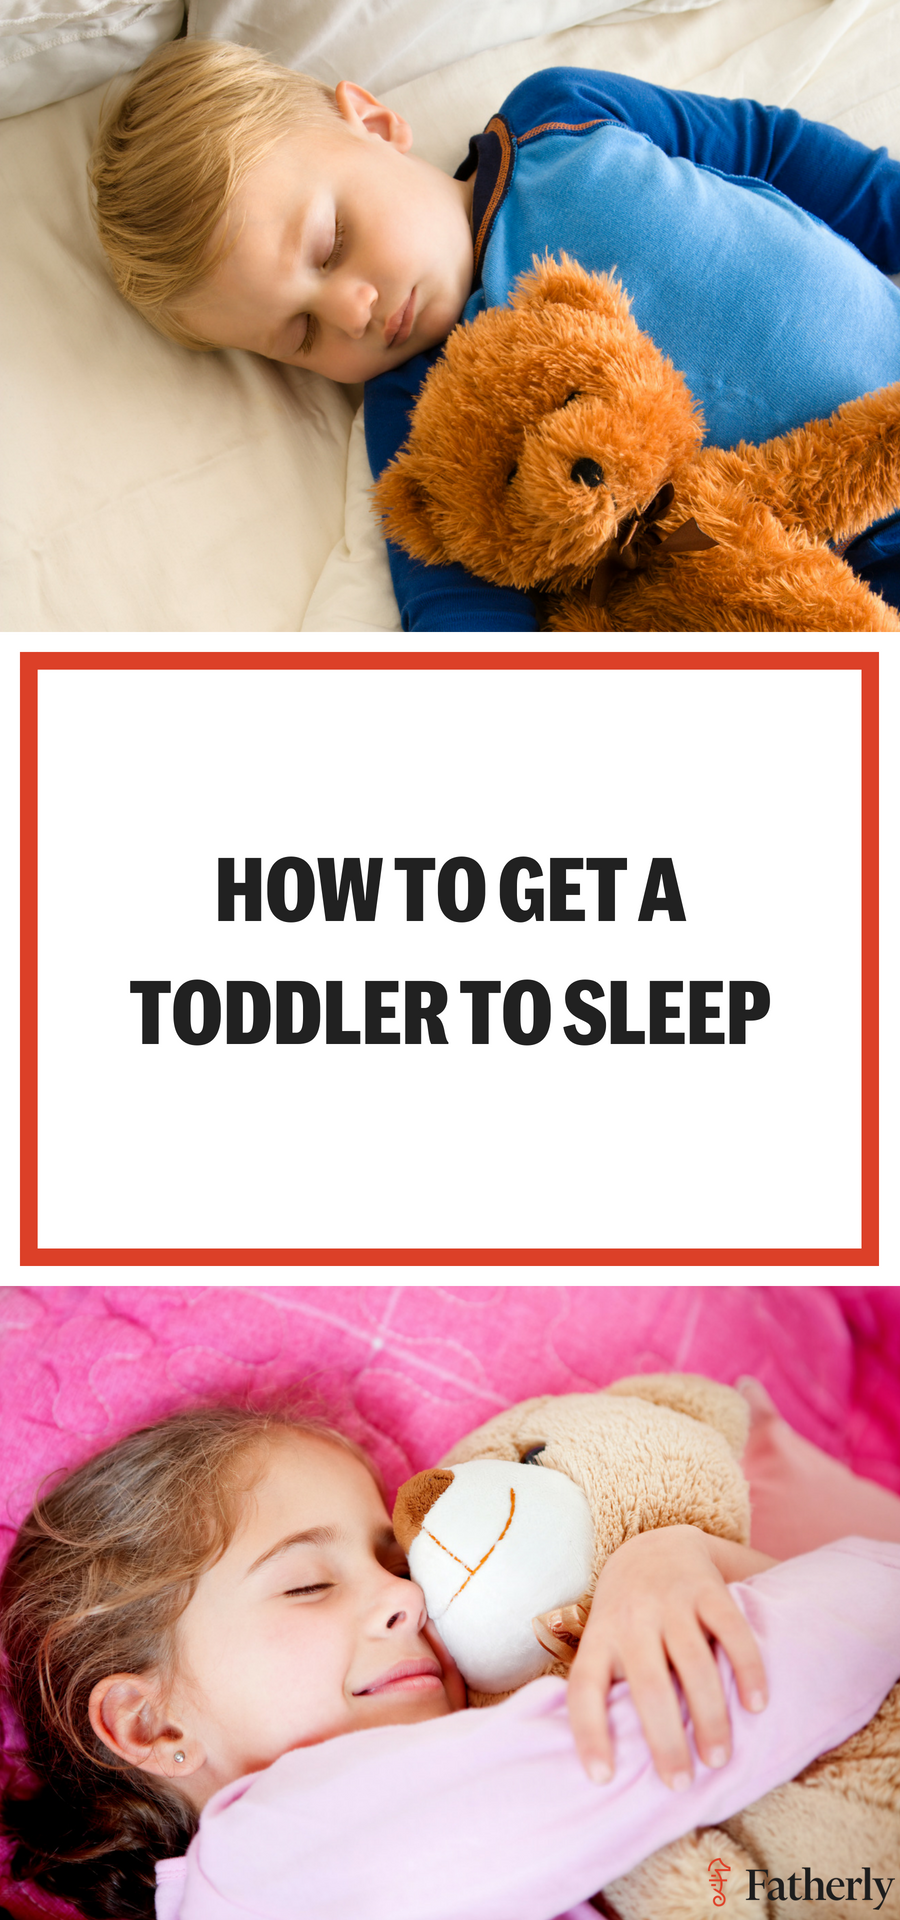 How To Get Your Toddler To Sleep Toddler Sleep Aid Girl Baby Shower Party Toddler Sleep Schedule